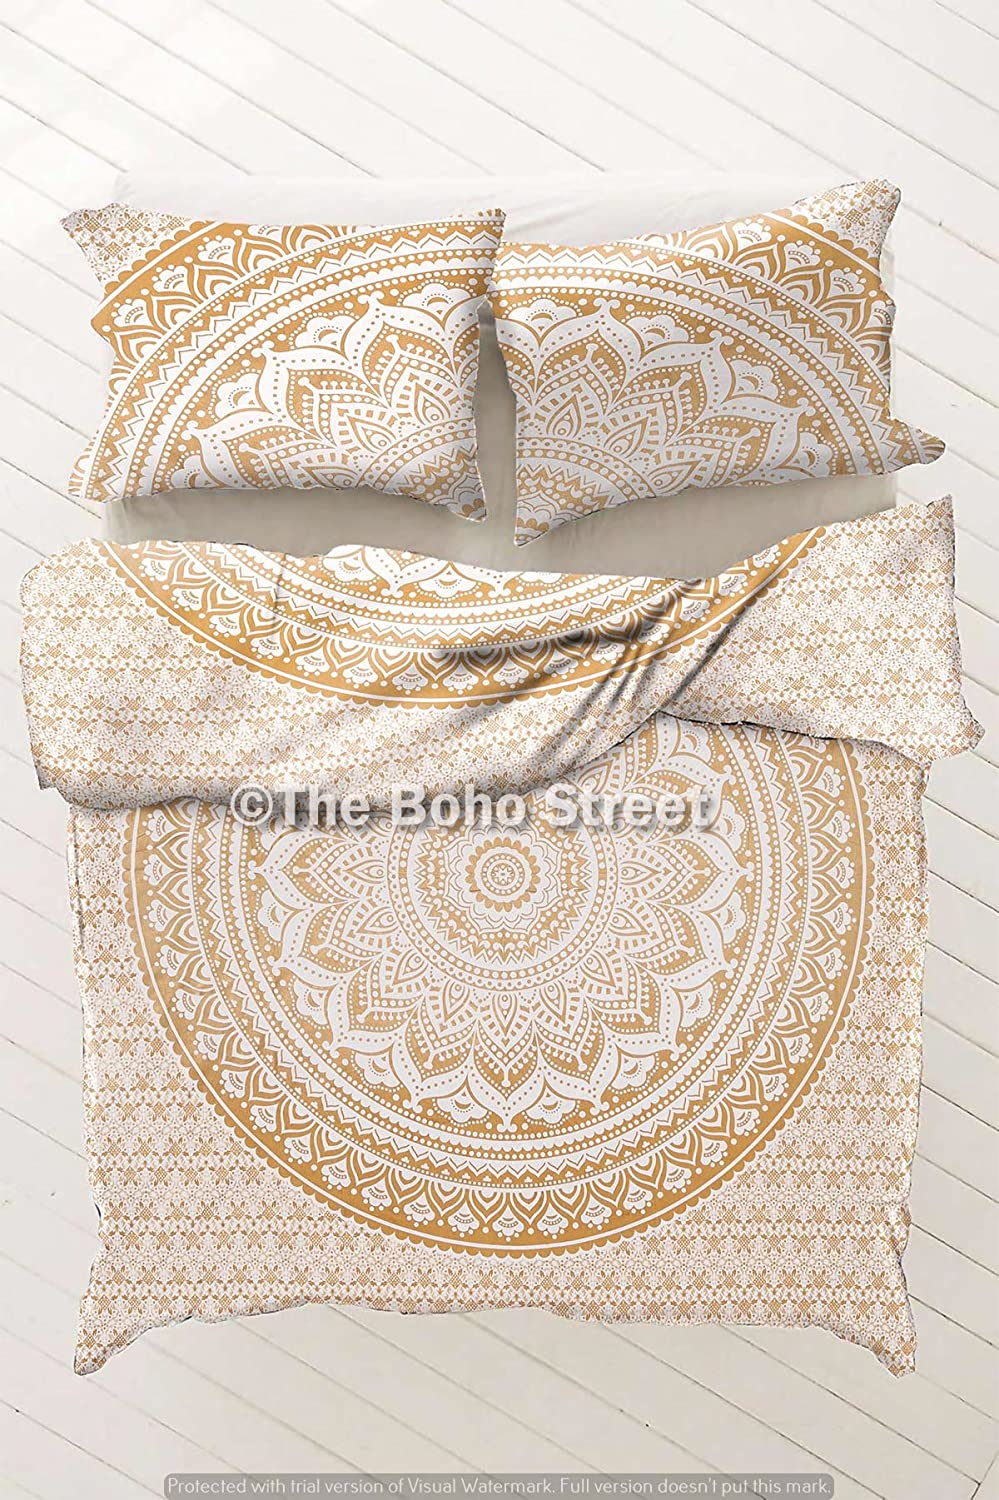 Indian Reversible Duvet Cover Quilt Cover Coverlet Bohemian Doona Cover Handmade 82 x 92 The Boho Street Range of Queen Size 100/% Cotton Duvet Cover Sets with Pillow Covers